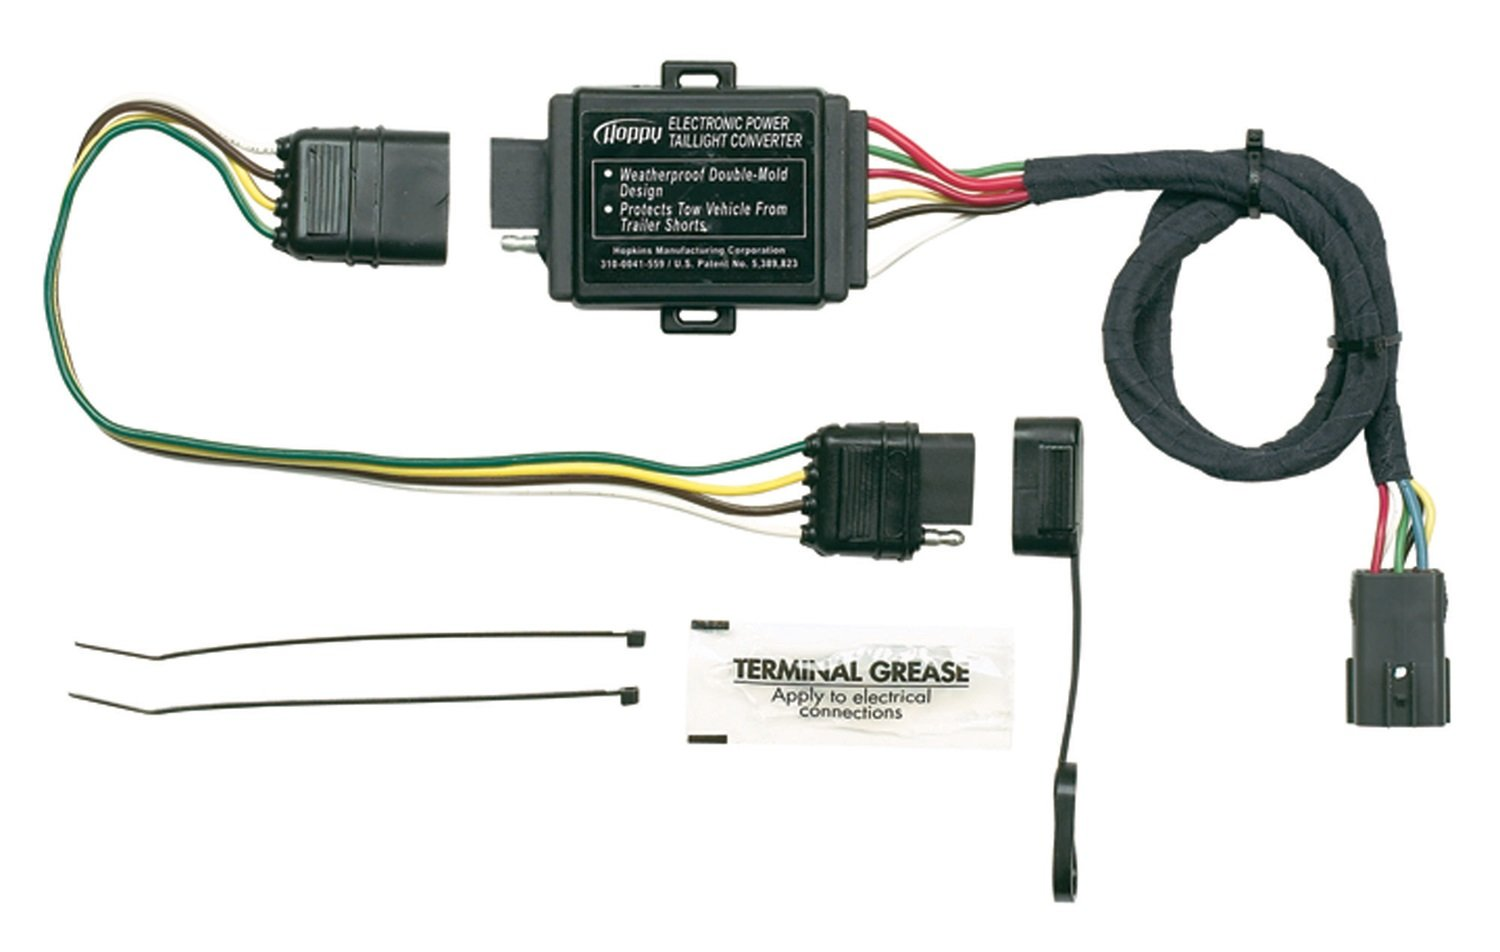 61dKvjPegbL._SL1500_ amazon com hopkins 11143875 plug in simple vehicle to trailer universal trailer wiring harness at cos-gaming.co